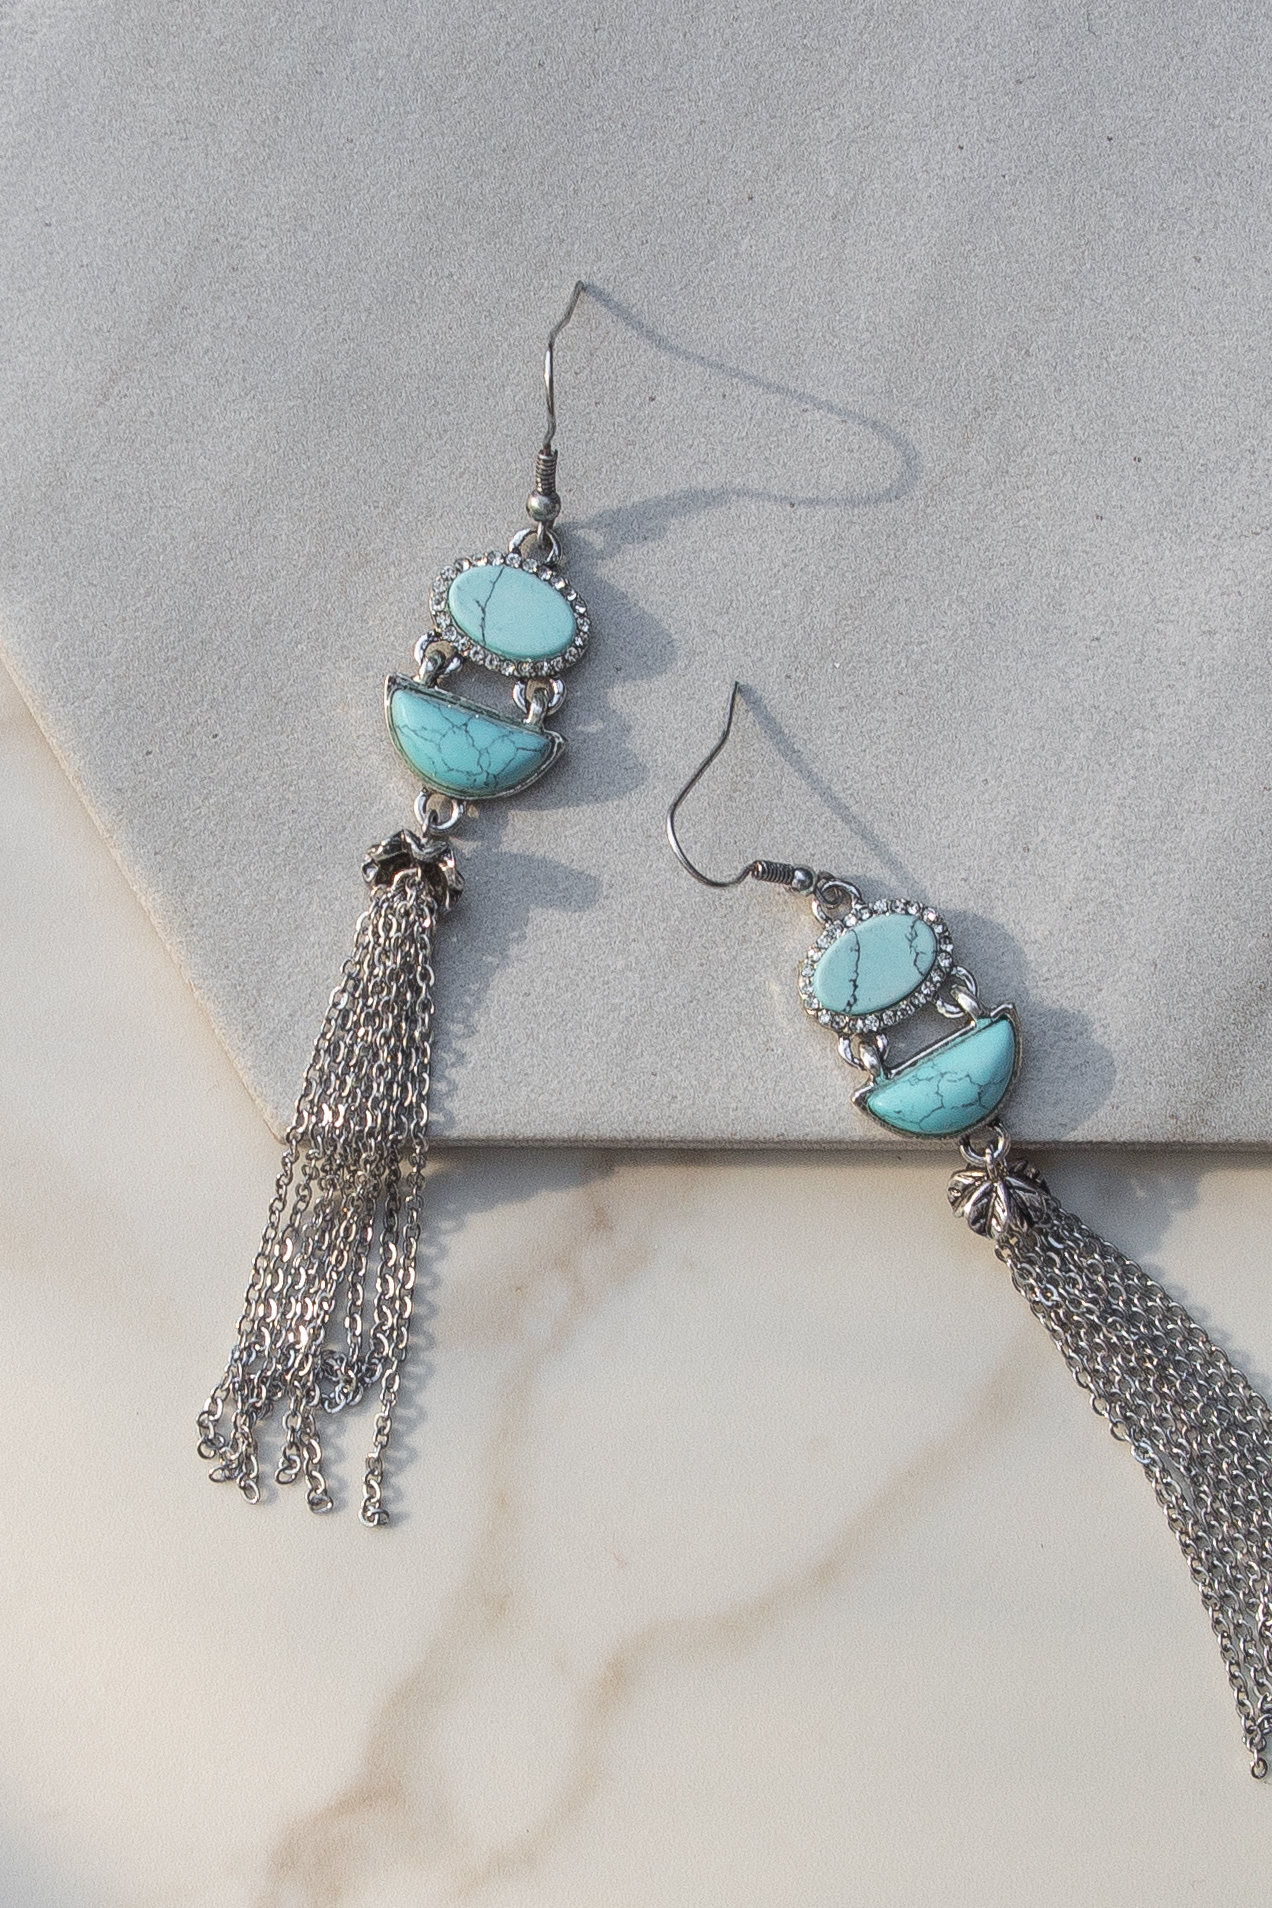 Turquoise Earrings with Tassel Details and Rhinestones